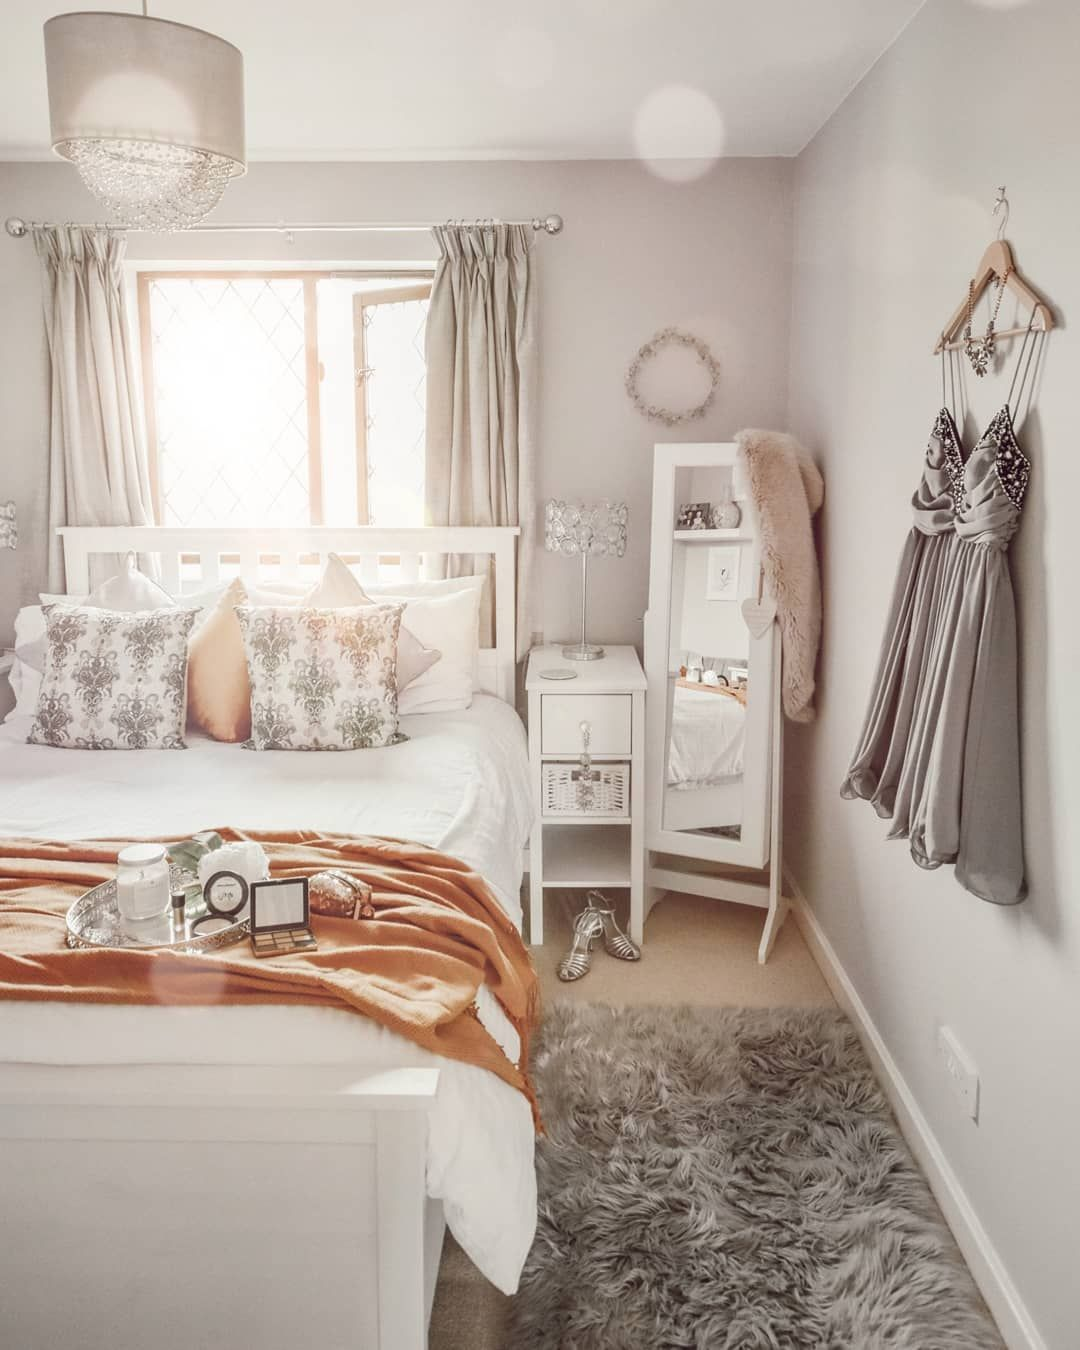 Grey bedroom decor doesnt have to be boring, splashes of ...